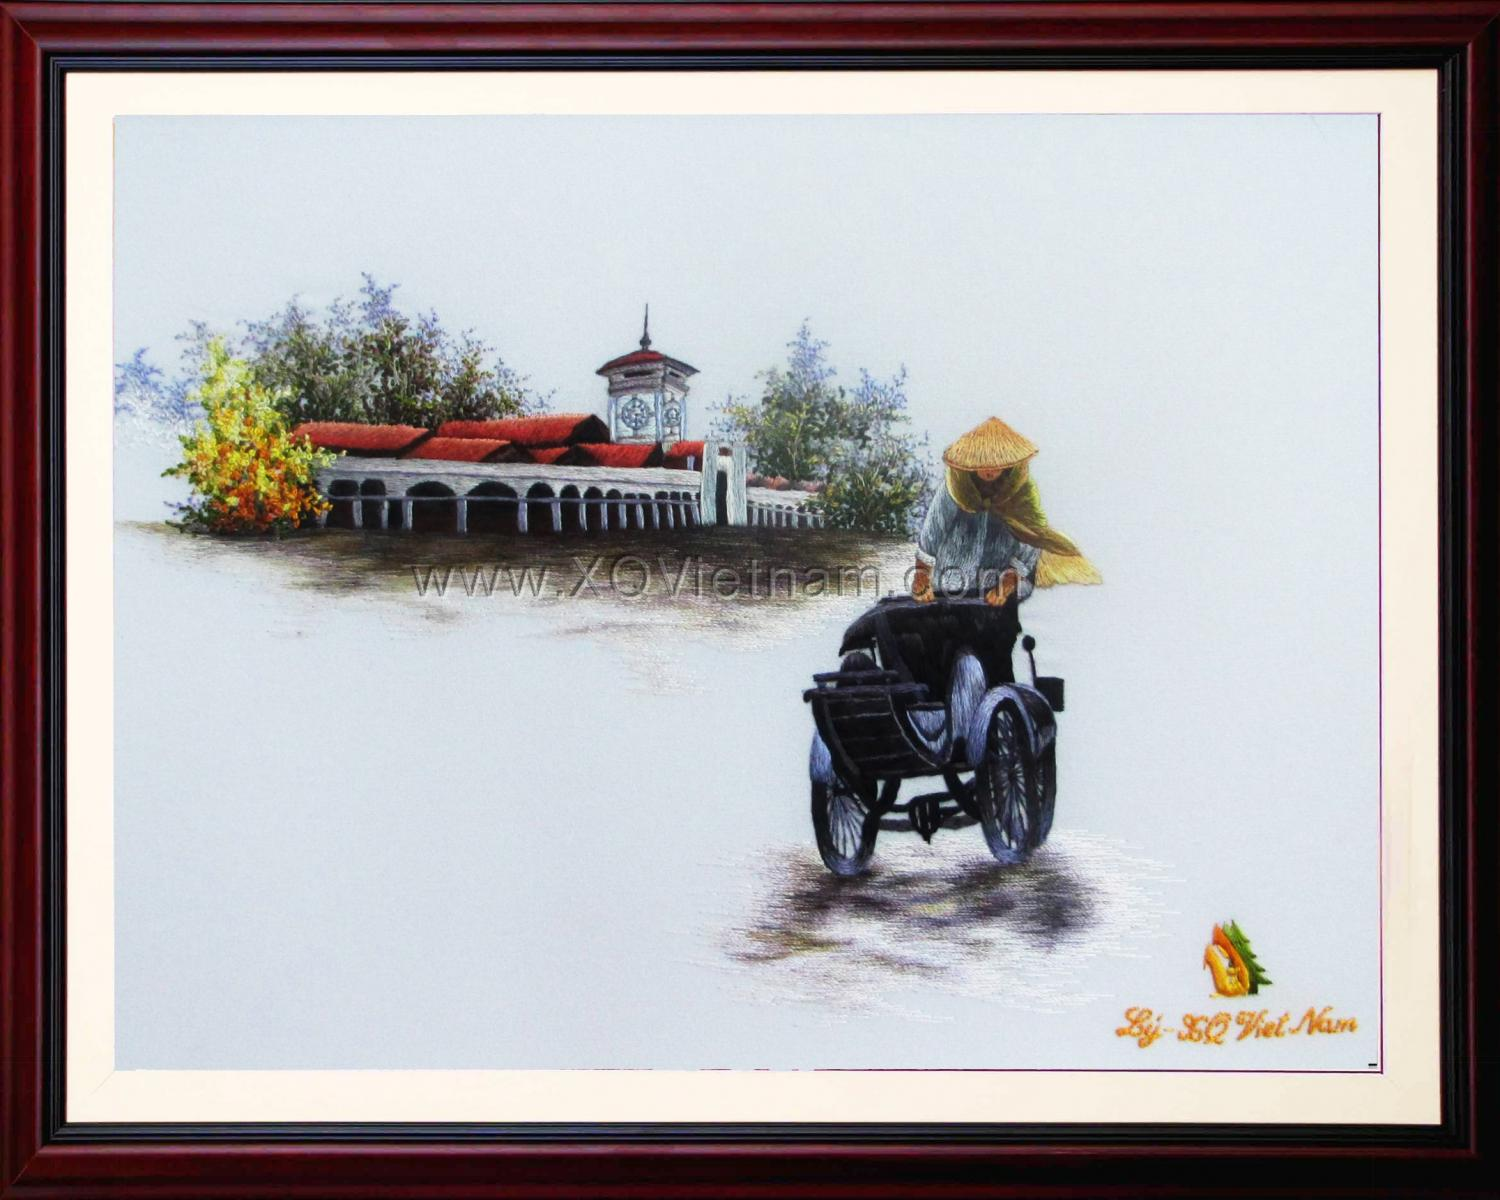 upload/images/Que huong/5737 XICH LO VA CHO BEN THANH N.jpg